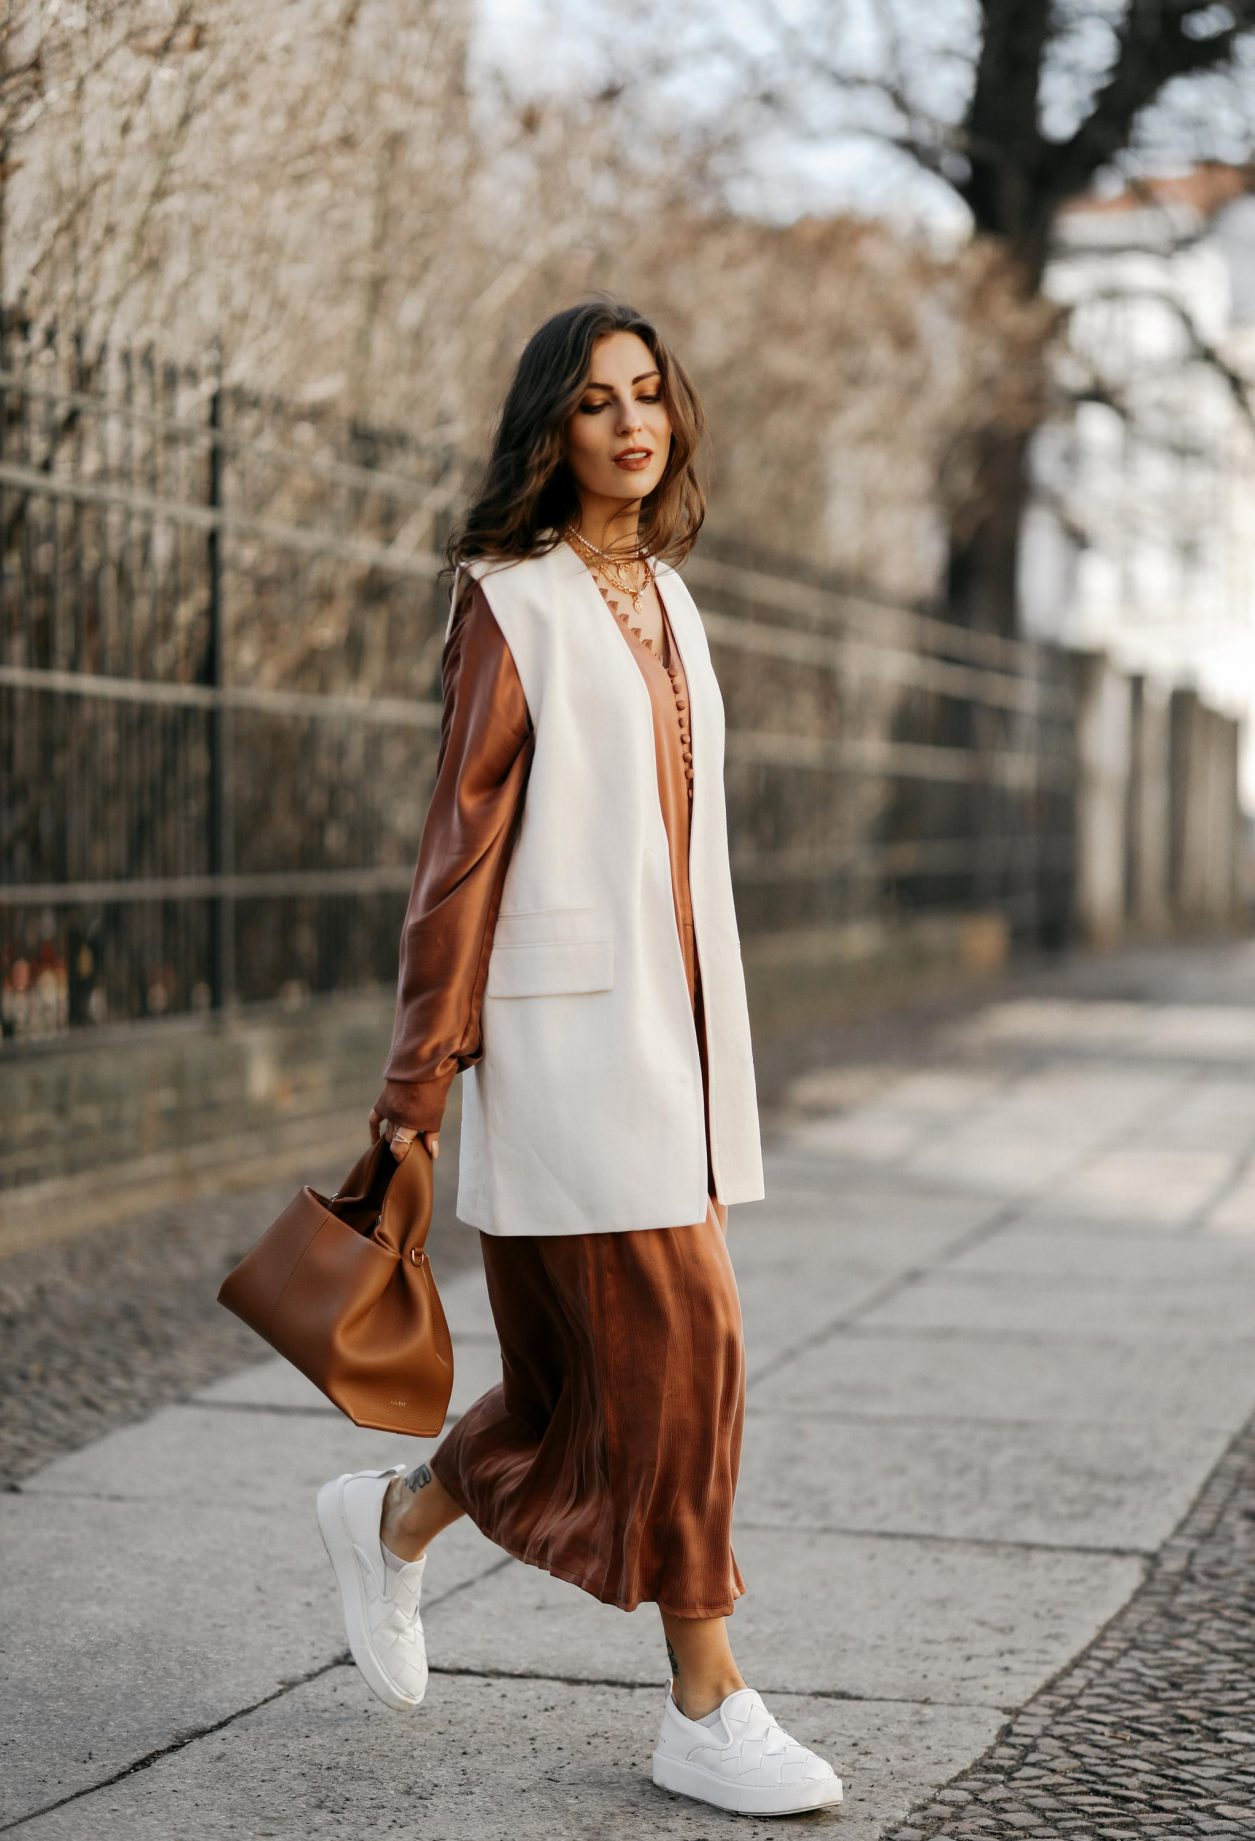 Streetstyle by Masha Sedgwick wearing bronze brown silk buttoned maxi dress by Envelope1976, white Zara blazer west, white slip-on Copenhagen studios sneaker, brown Polene Paris bag | Spring dress styling idea